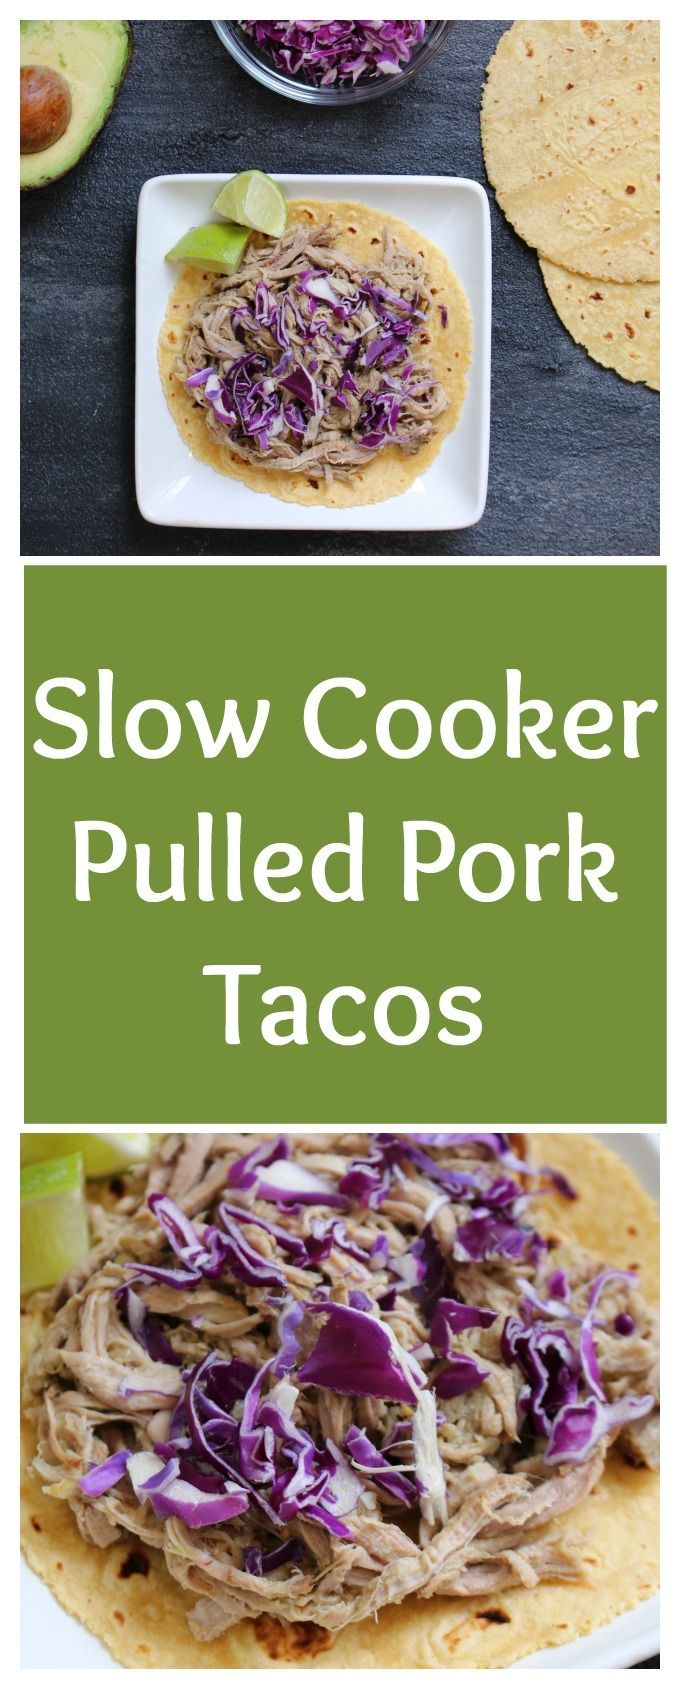 ... Pulled Pork for Tacos | Recipe | Pulled Pork Tacos, Pork